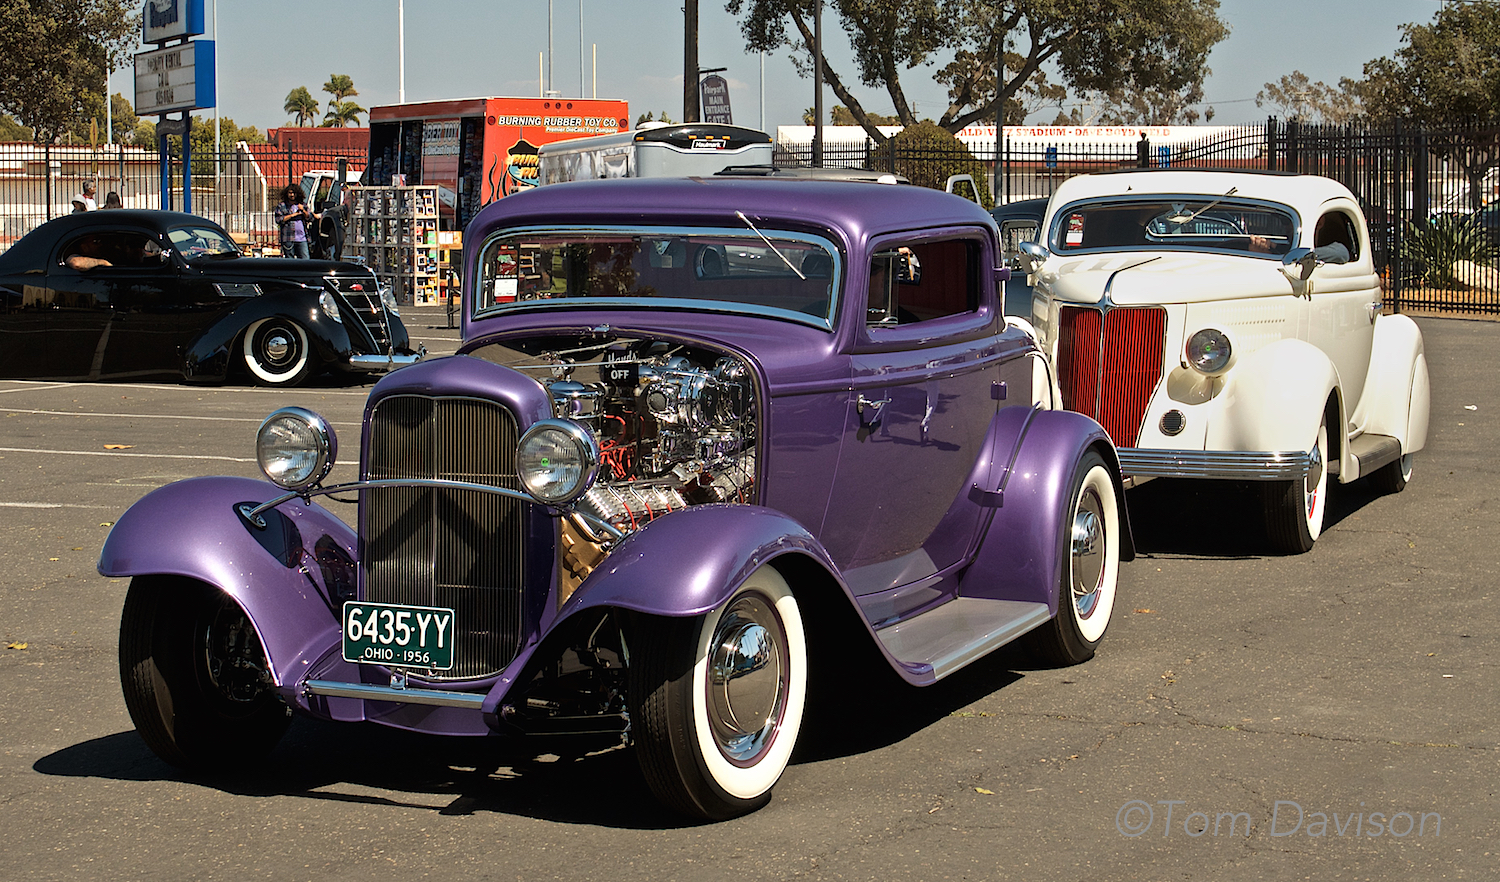 Both the 1932 Ford and the 1936 Ford are cars from the past recently restored.